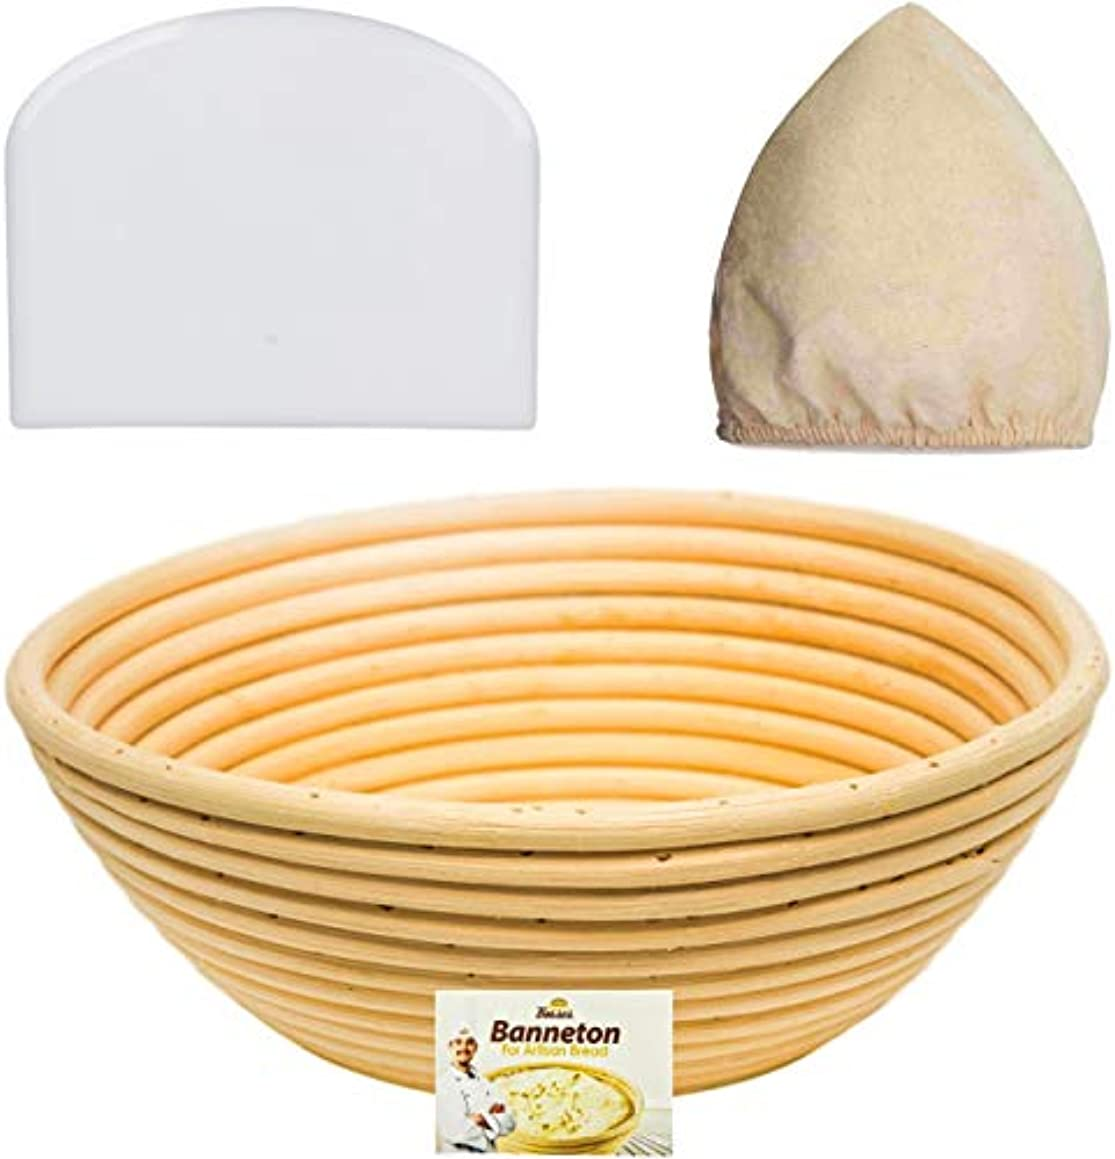 9 Inch Bread Banneton Proofing Basket - Baking Bowl Dough Gifts for Bakers Proving Baskets for Sourdough Lame Bread Slashing Scraper Tool Starter Jar Proofing Box